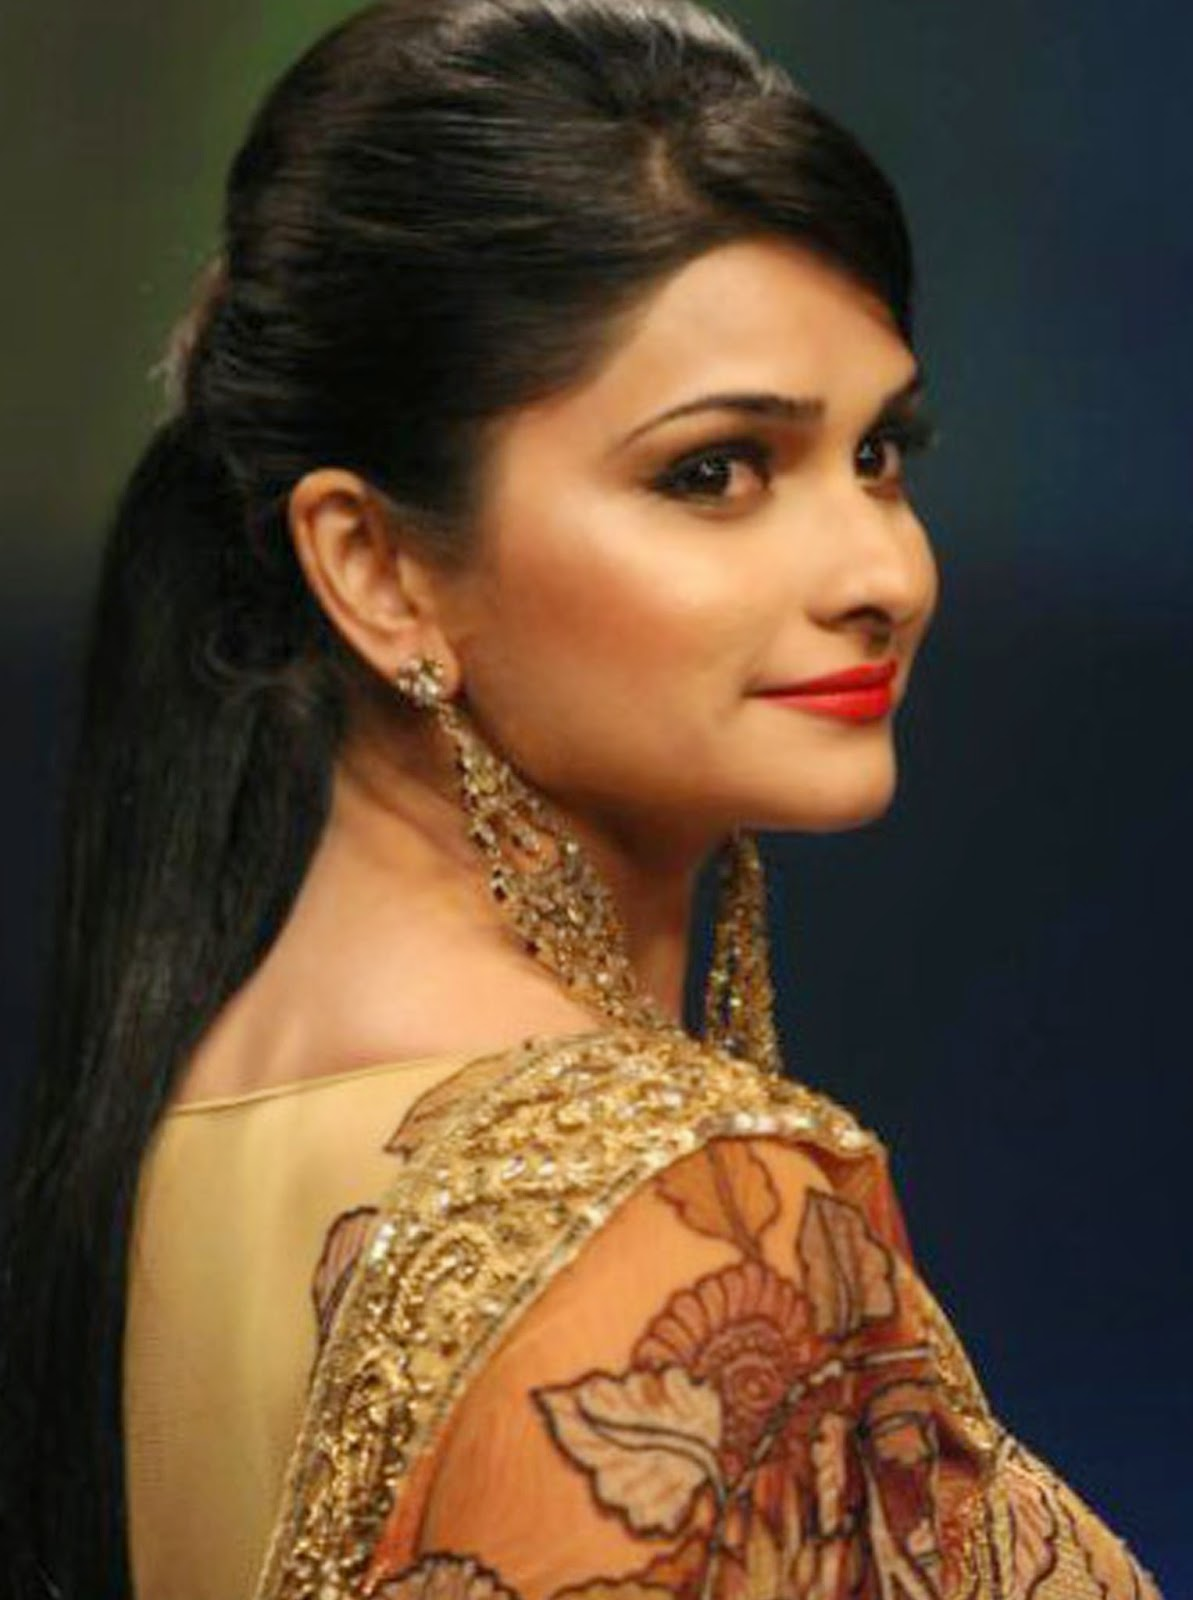 amasing hd wallpaper: prachi desai sweet girl hd images